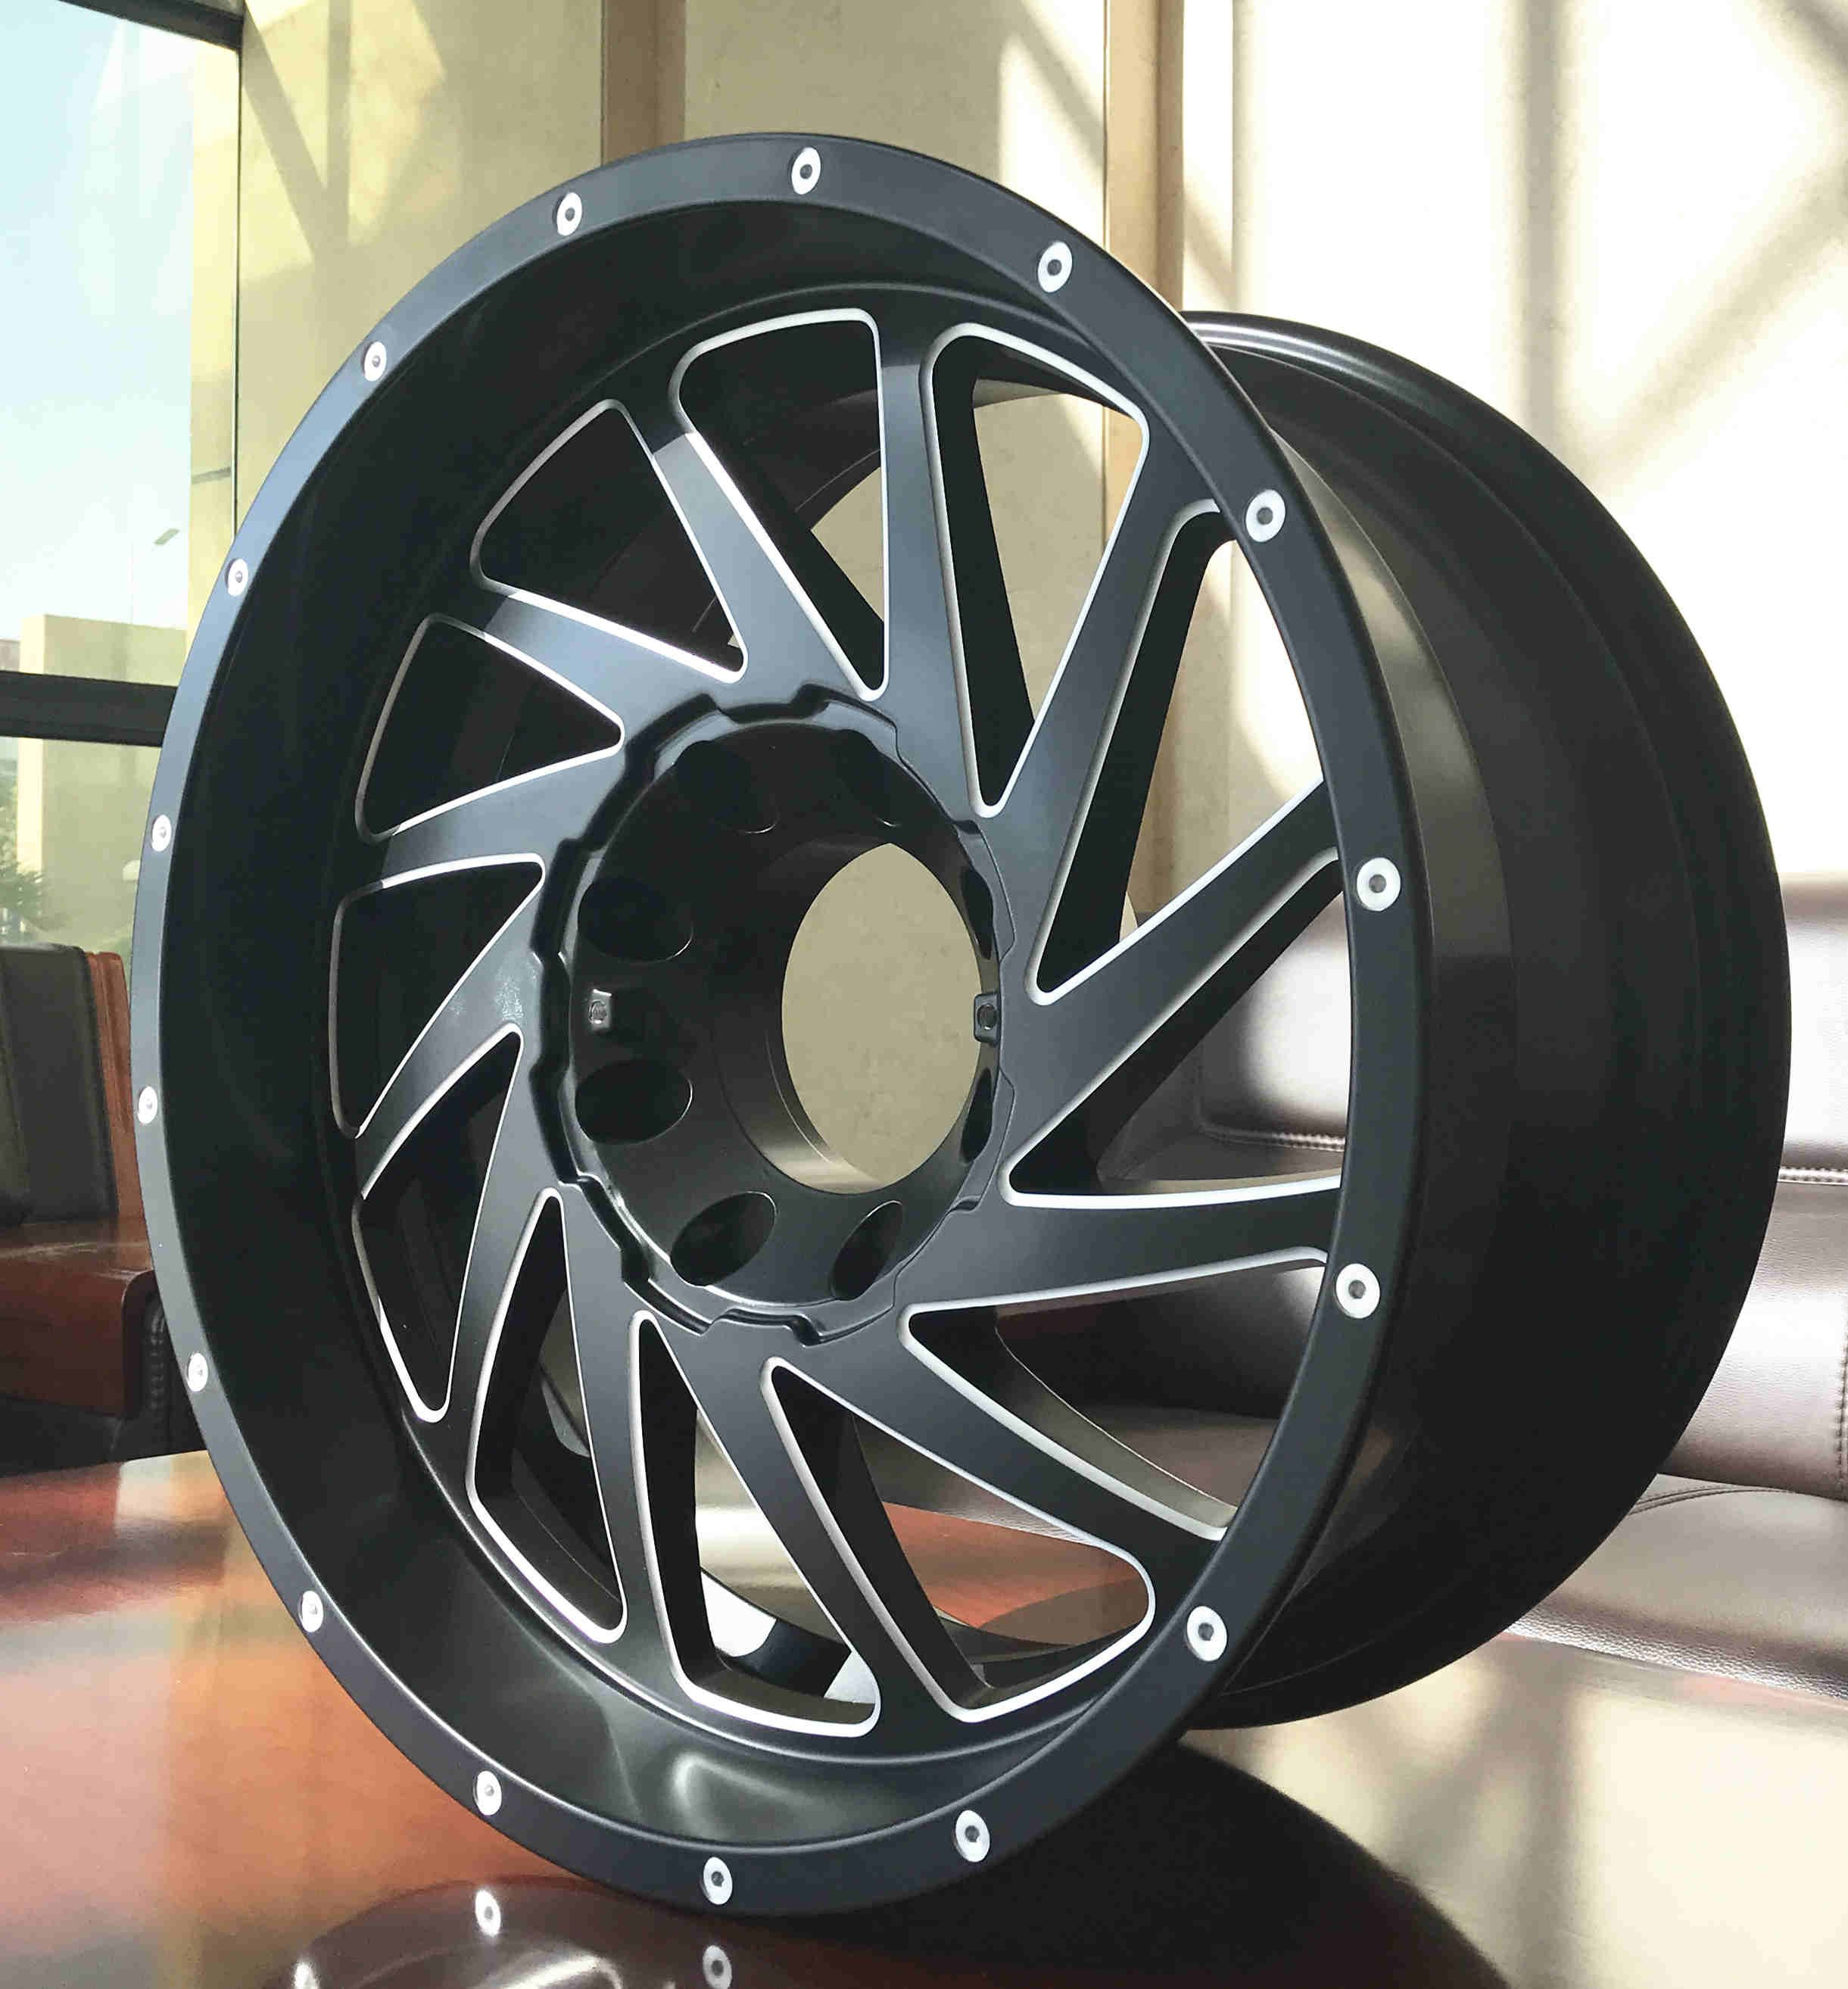 20 12 Car Wheels In 2020 Car Wheels Alloy Wheel Rim Wheels For Sale